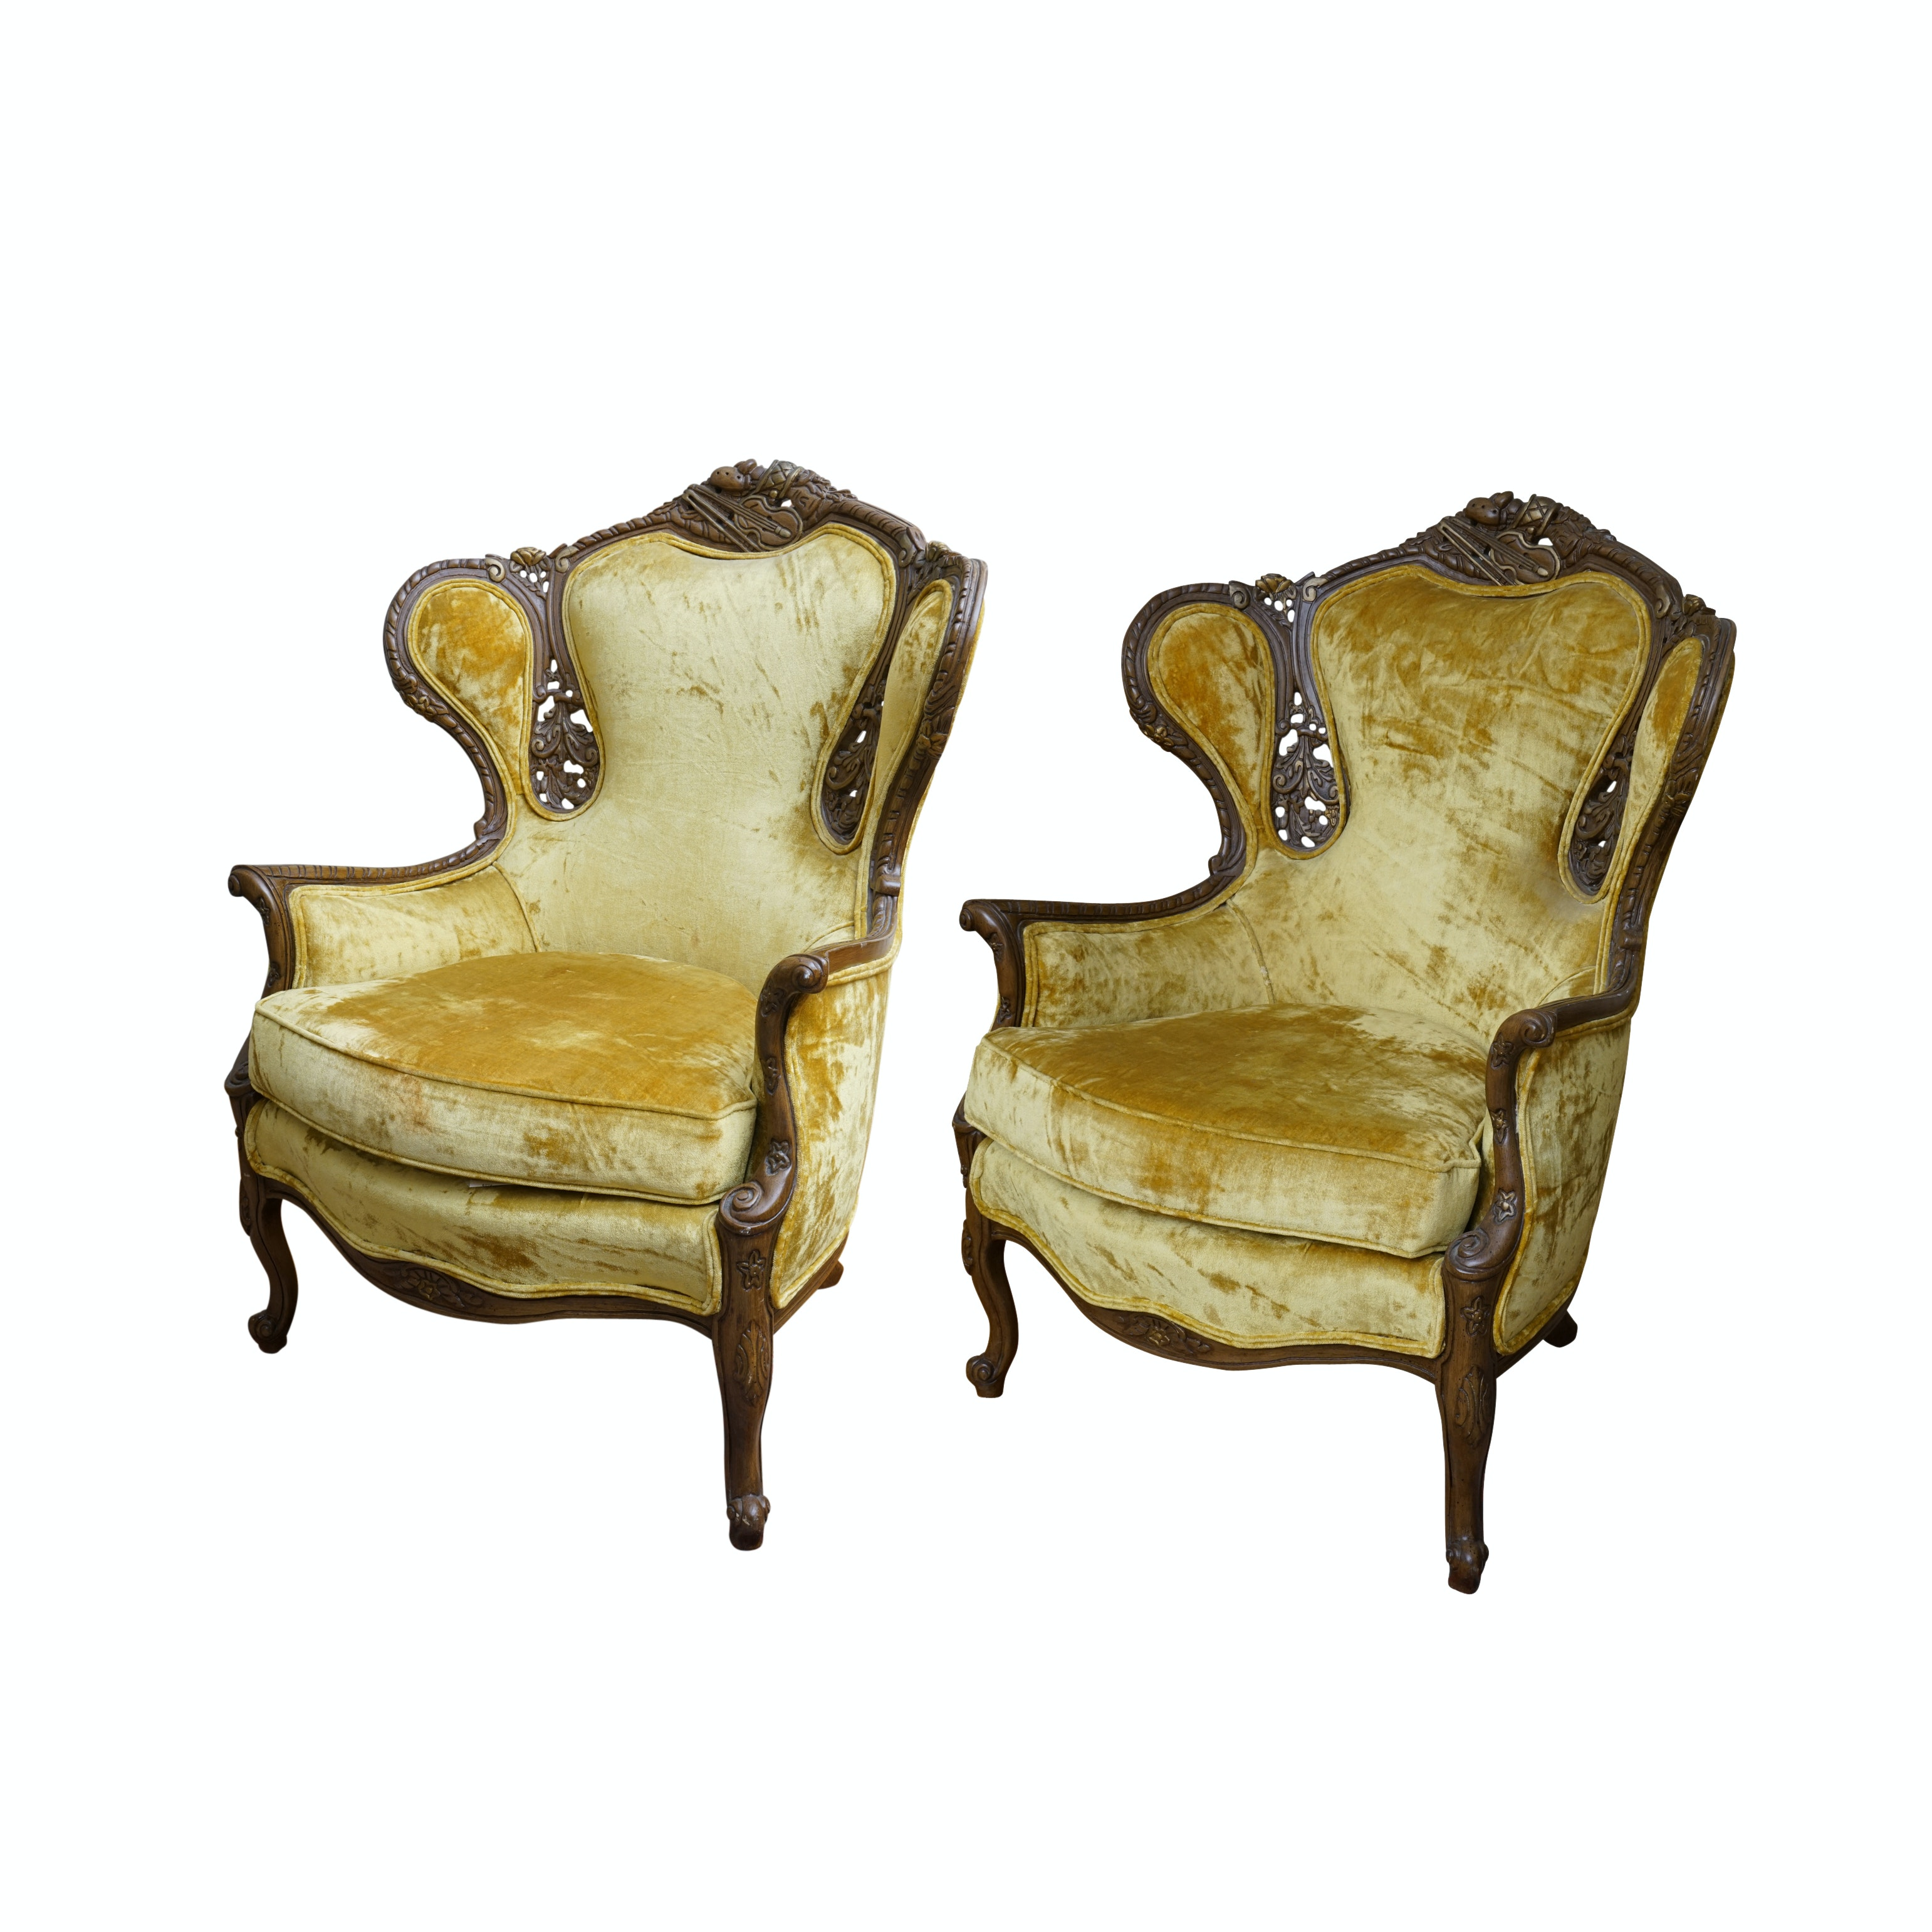 Vintage Rococo Style Arm Chair